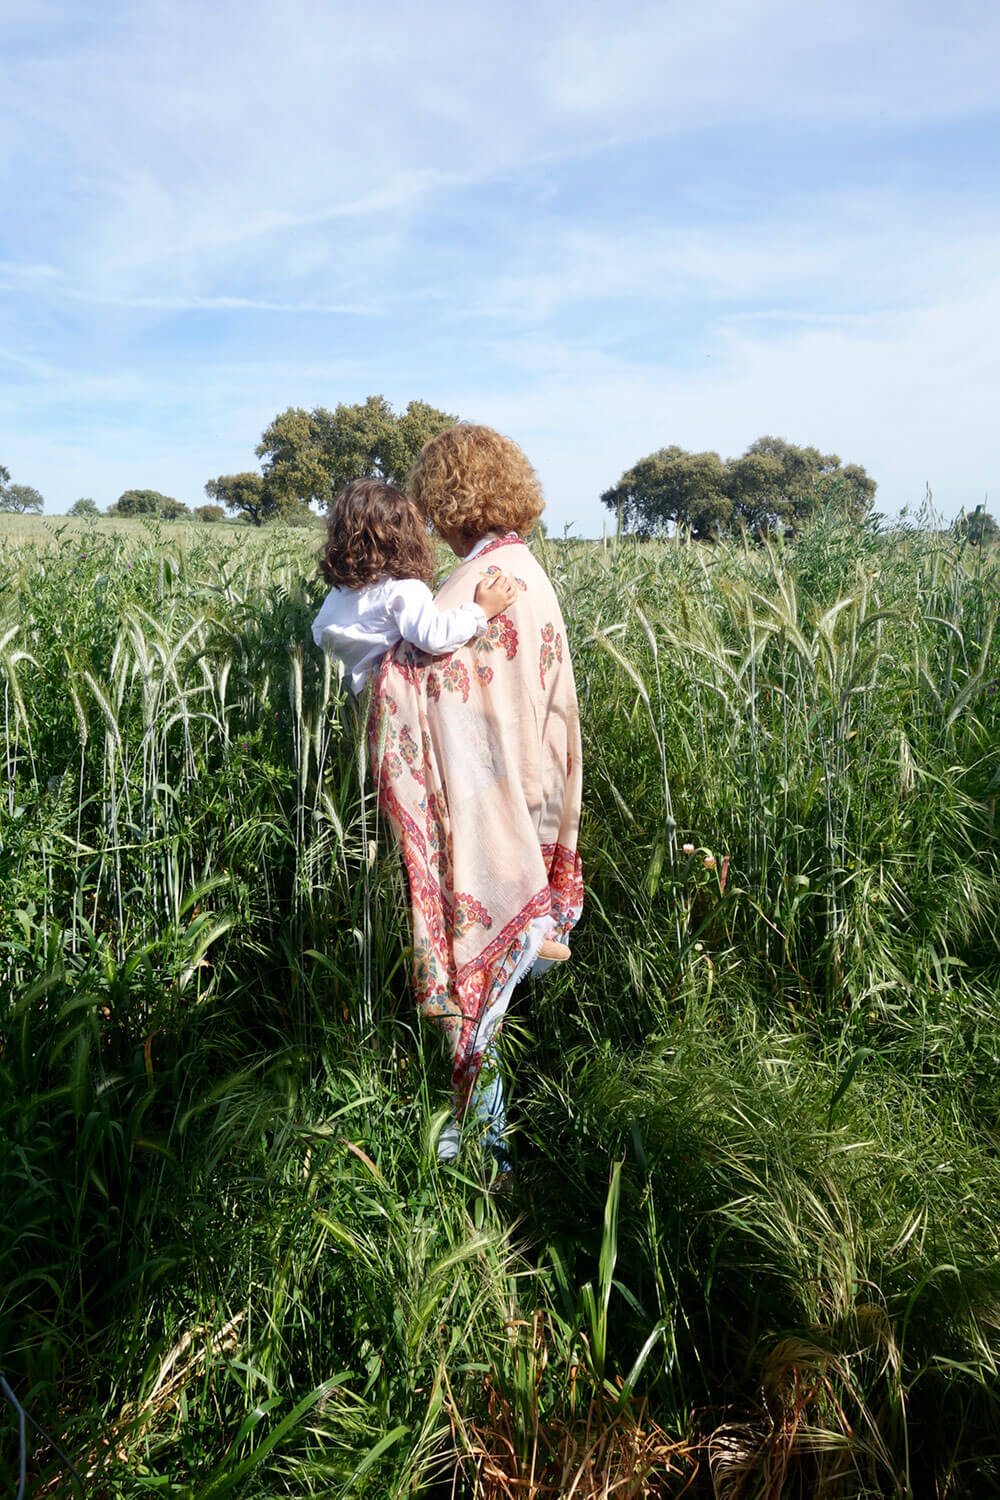 Child on mother's lap in the middle of a green wheat field.